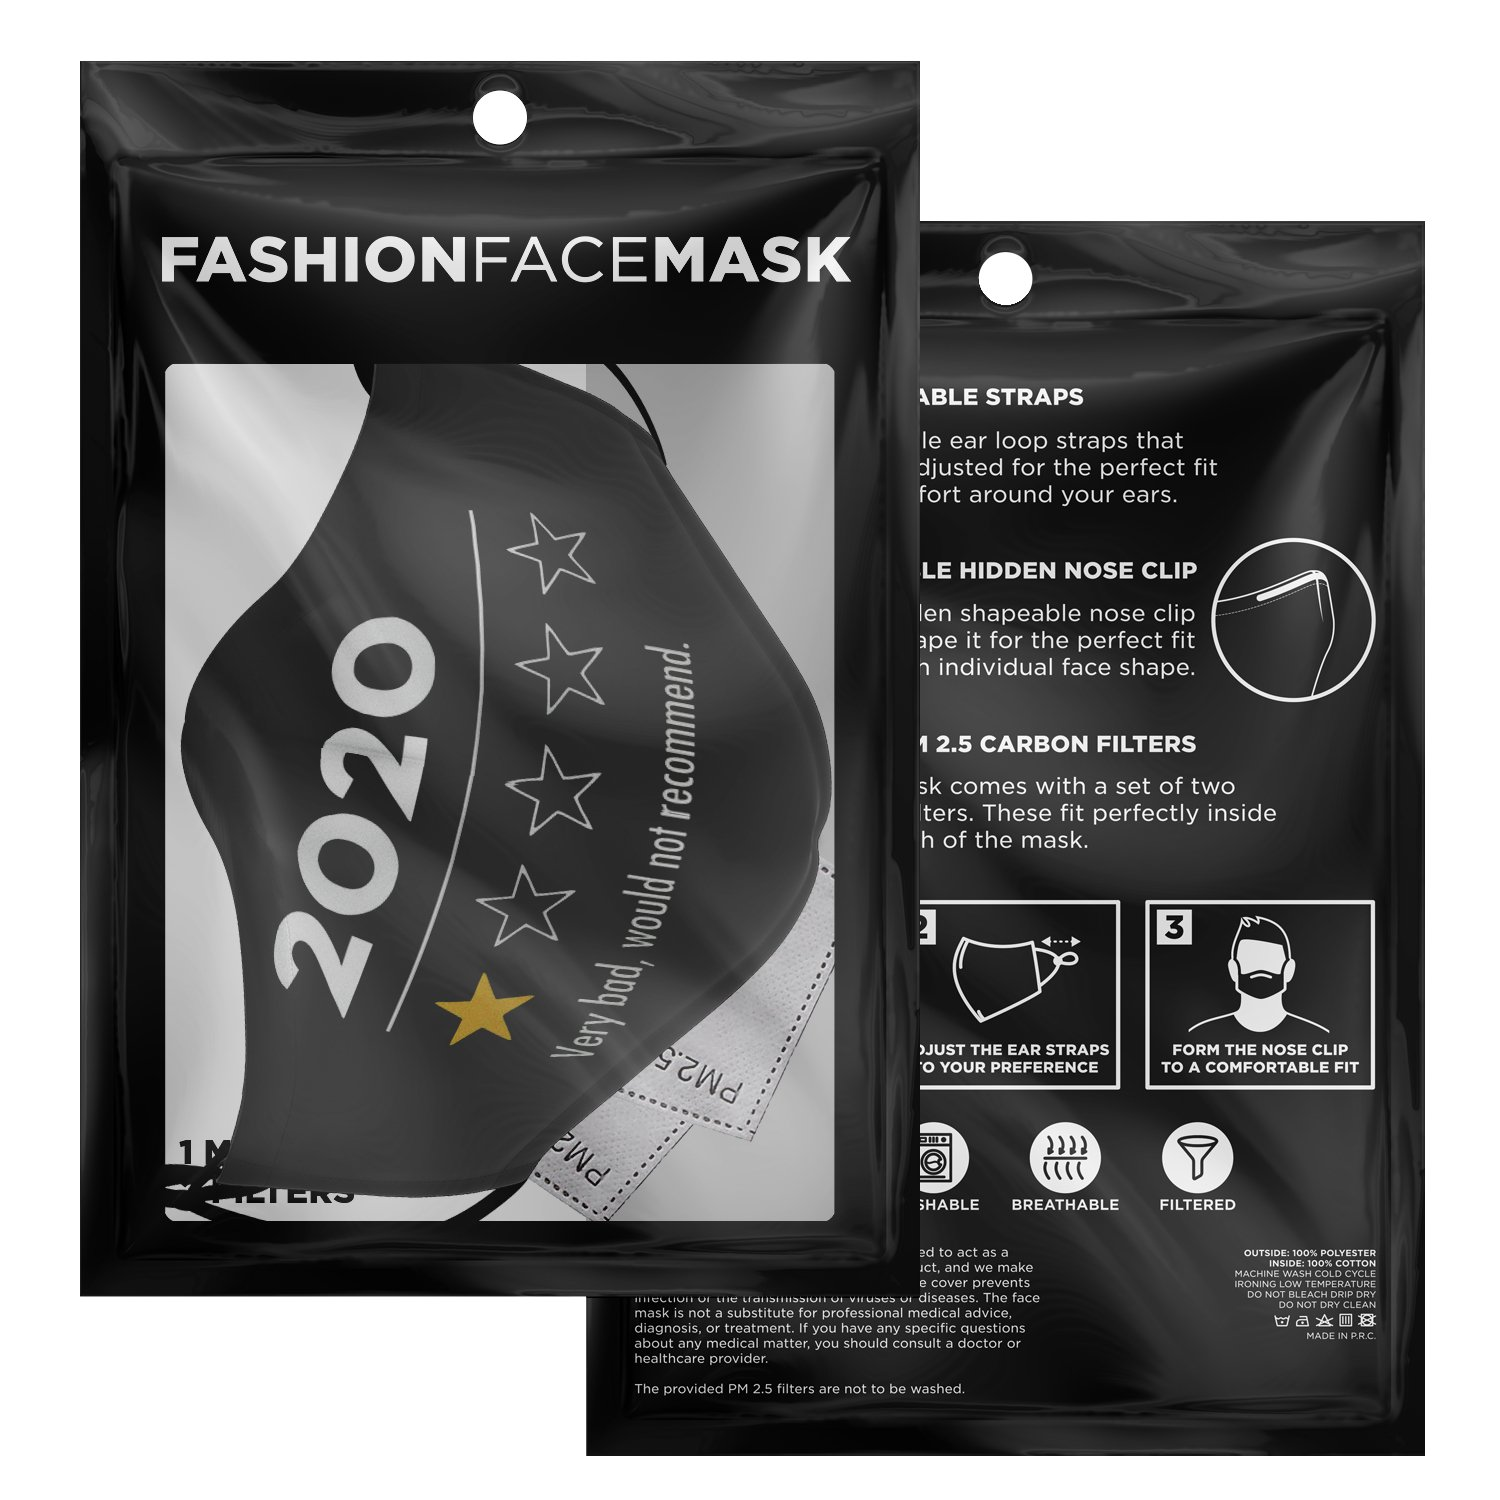 Very Bad Would Not Recommend 2020 Funny Review Face Mask 3